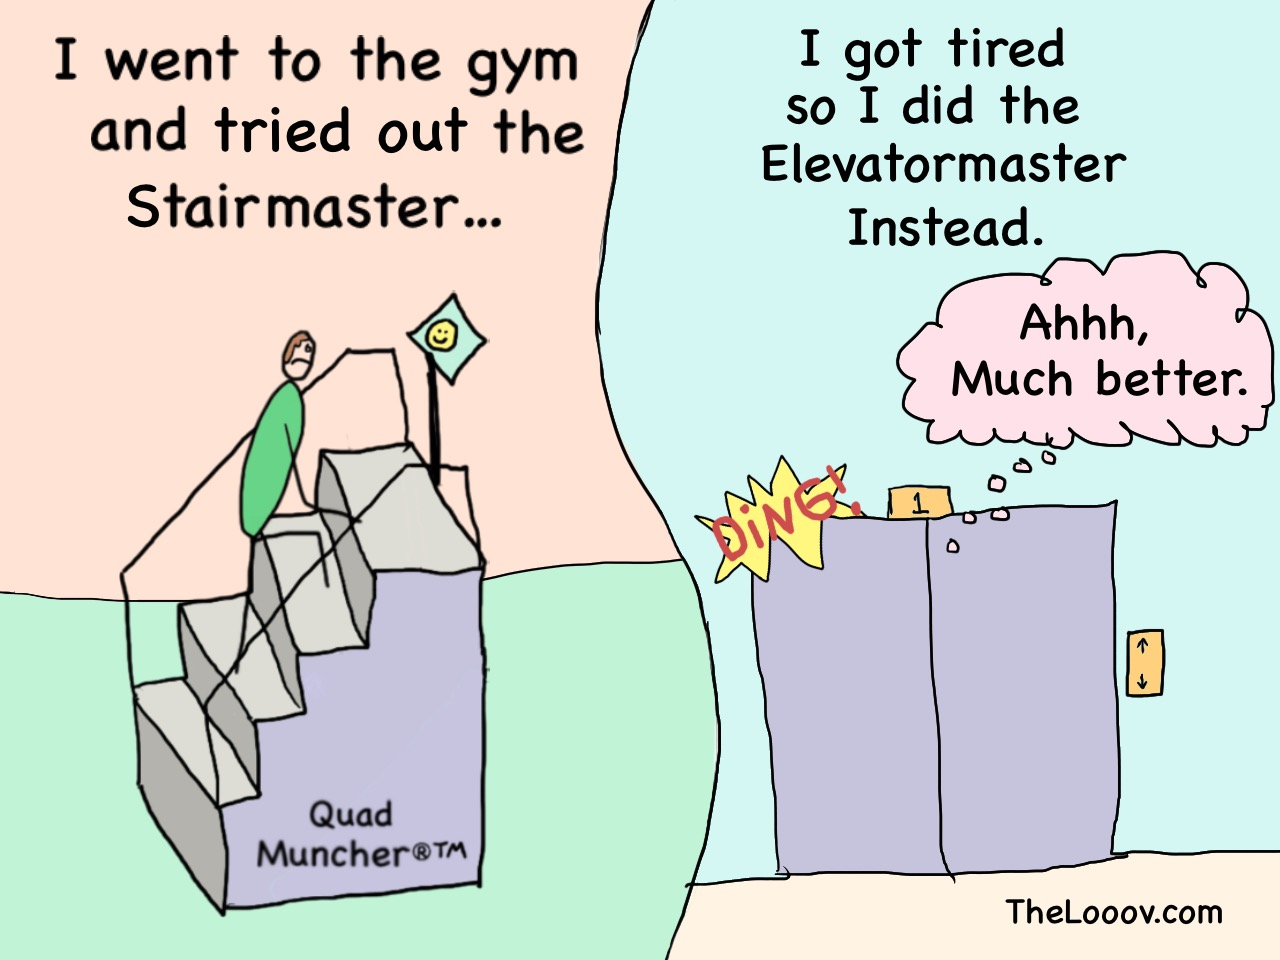 Stairmaster one panel